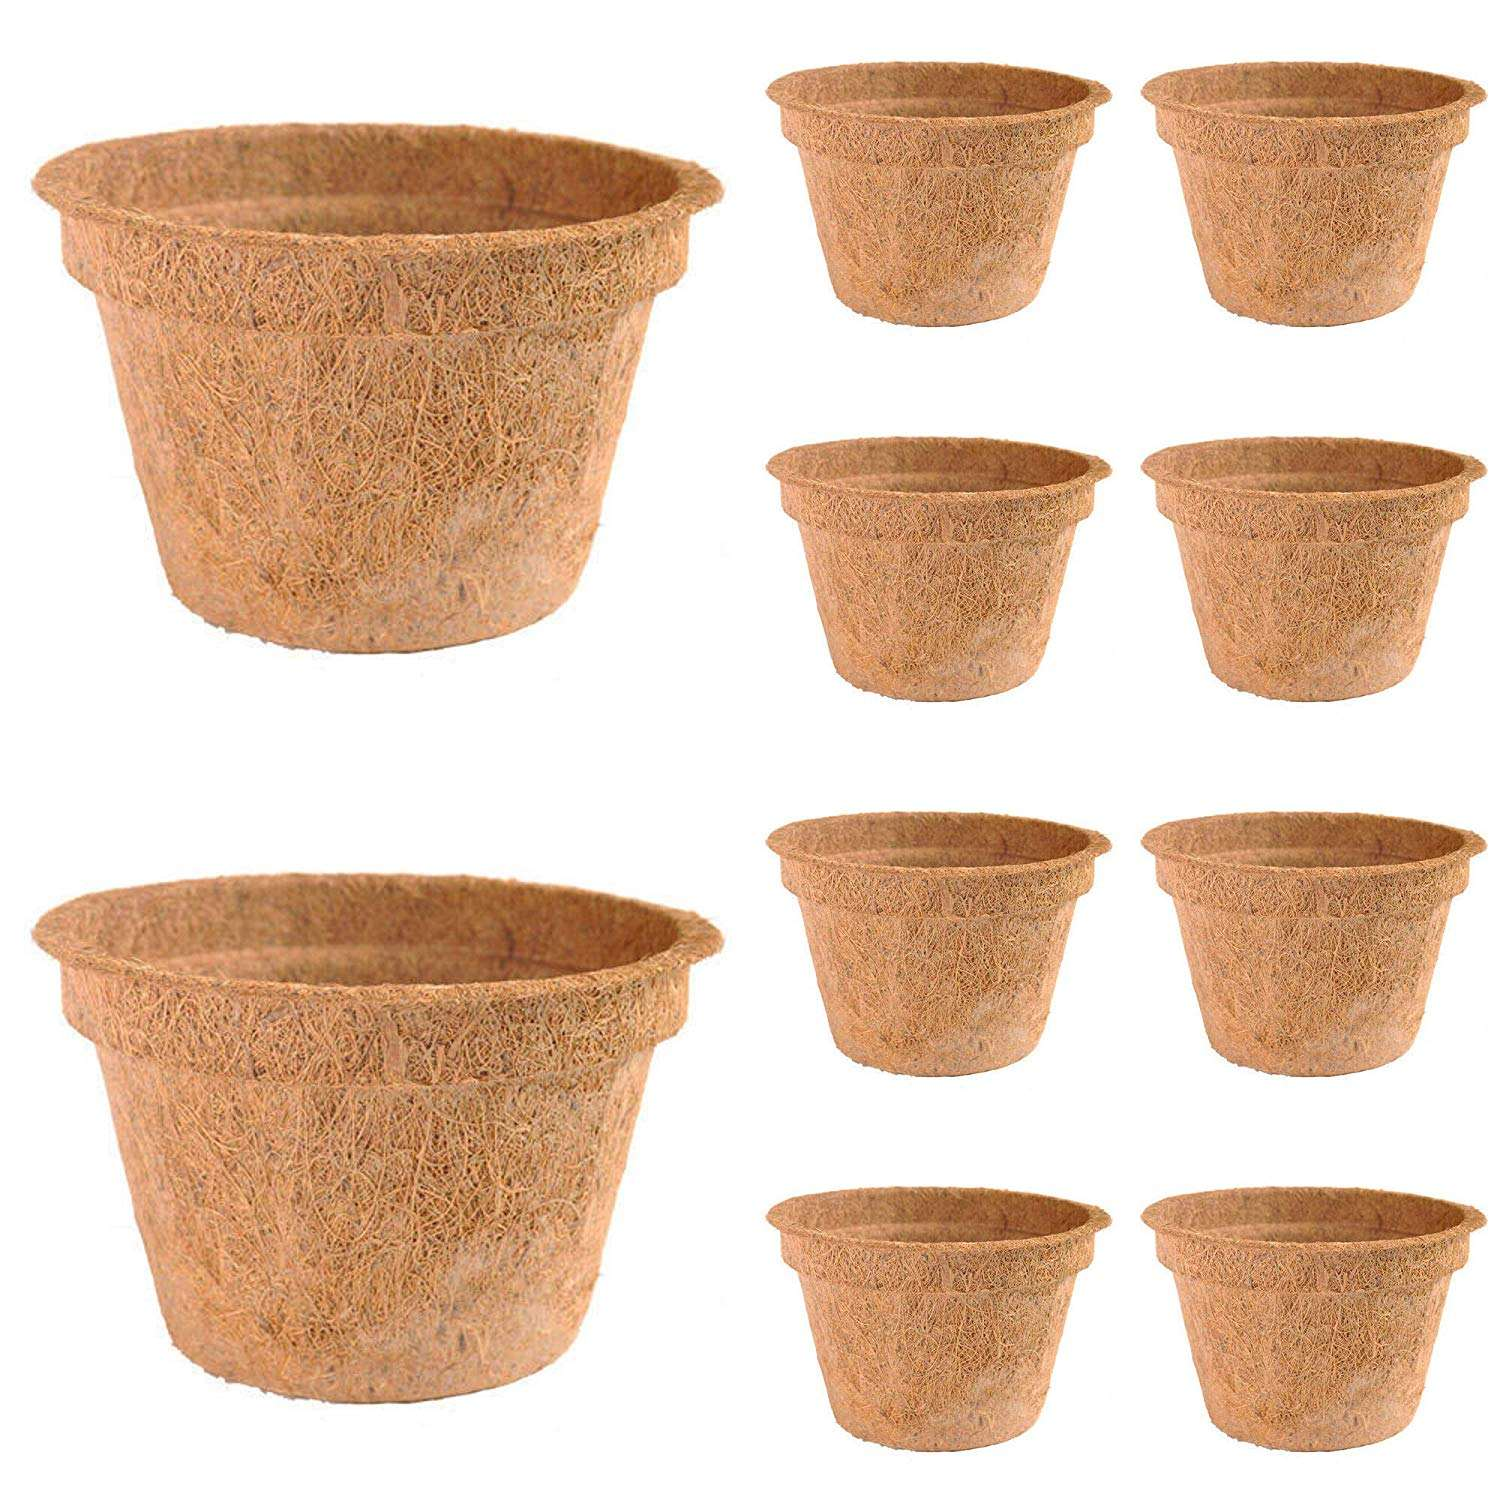 COCONUT COIR POTS for seed nursery from Vietnam/Whatsapp: +84378 247 335